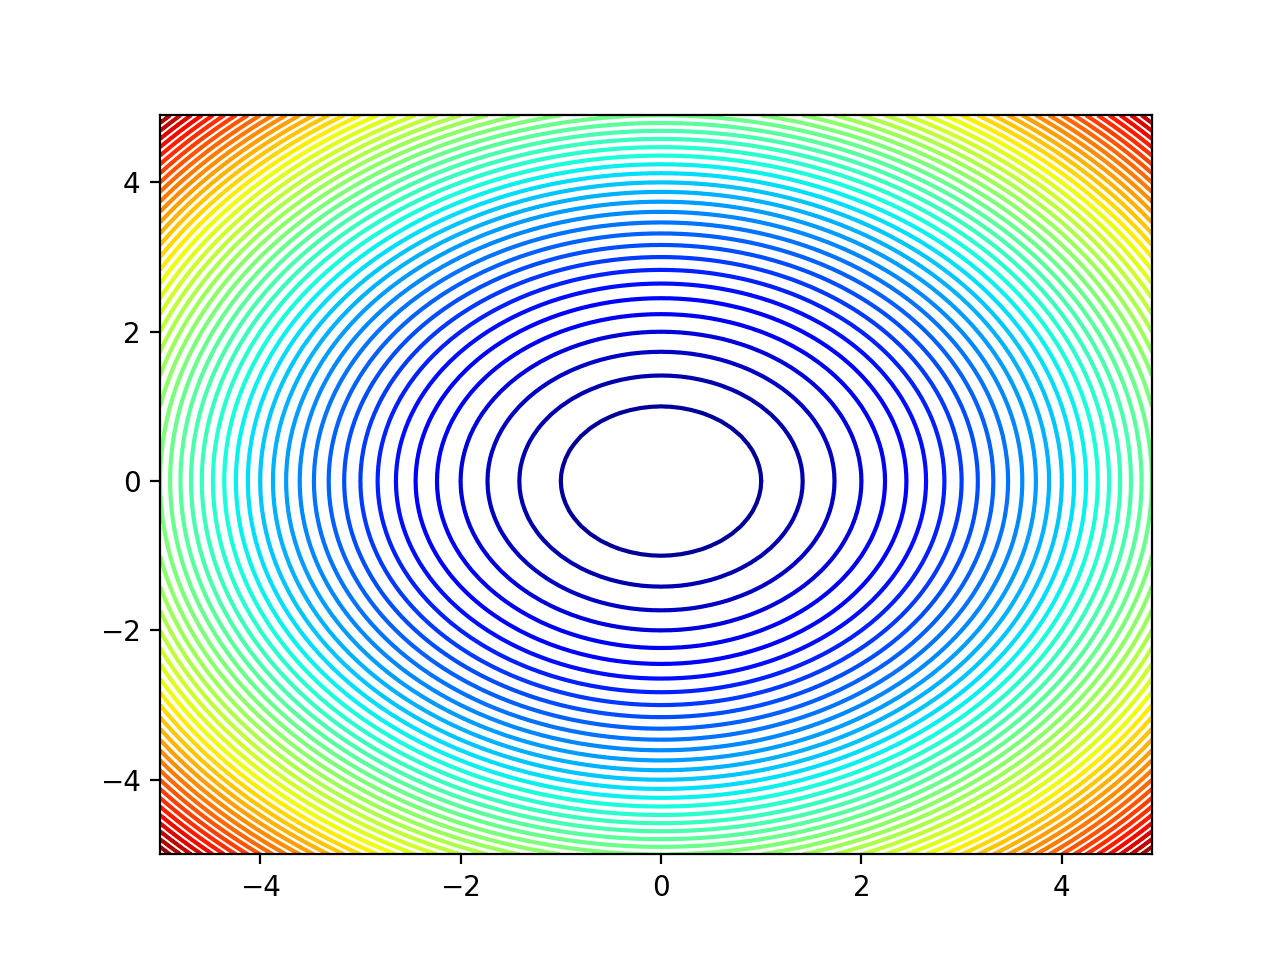 Contour Plot of a Two-Dimensional Objective Function